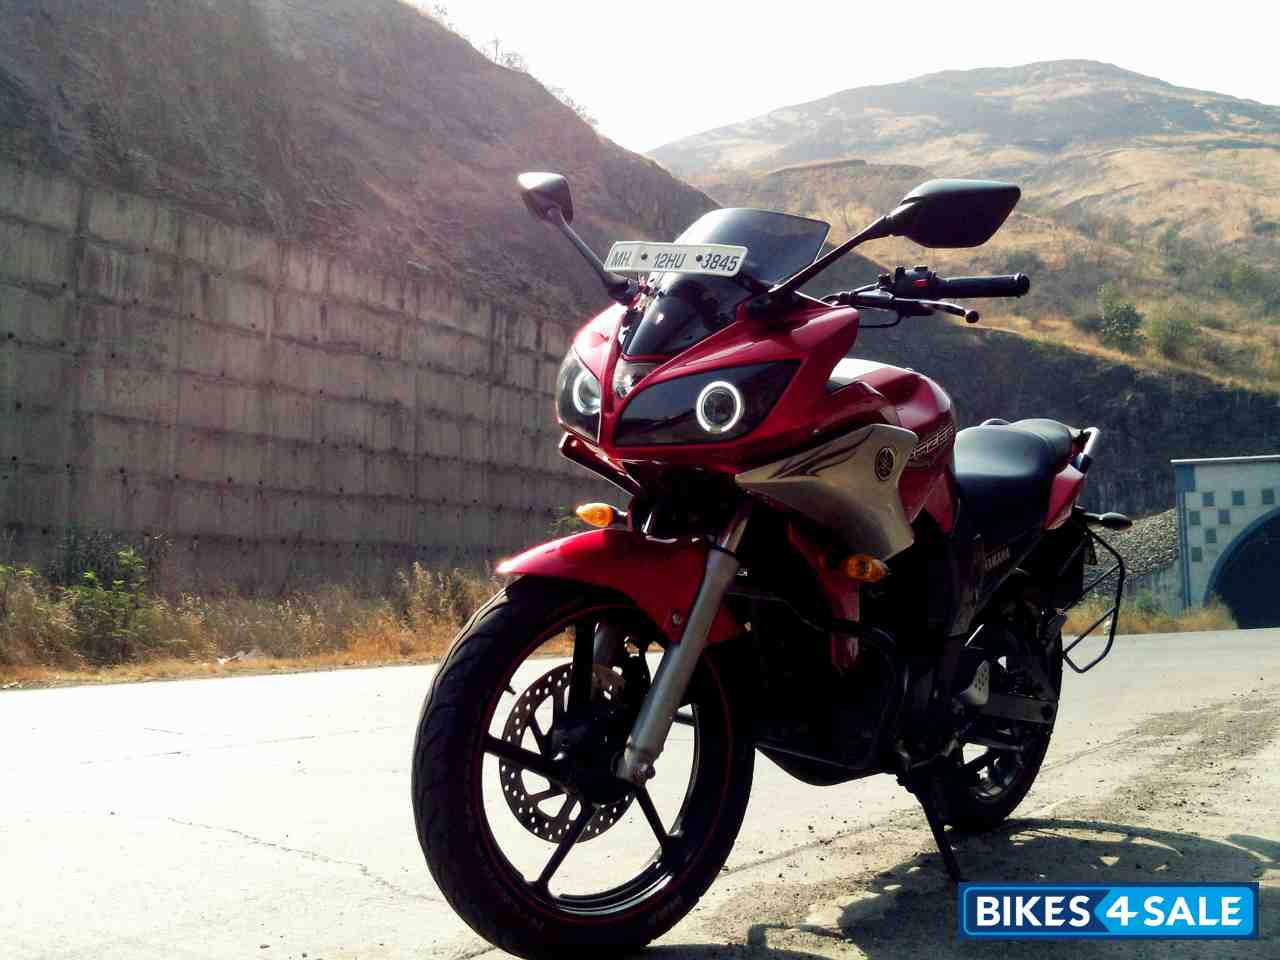 Lava Red Yamaha Fazer Picture - Only One Picture AvailableYamaha Fazer 150cc Red